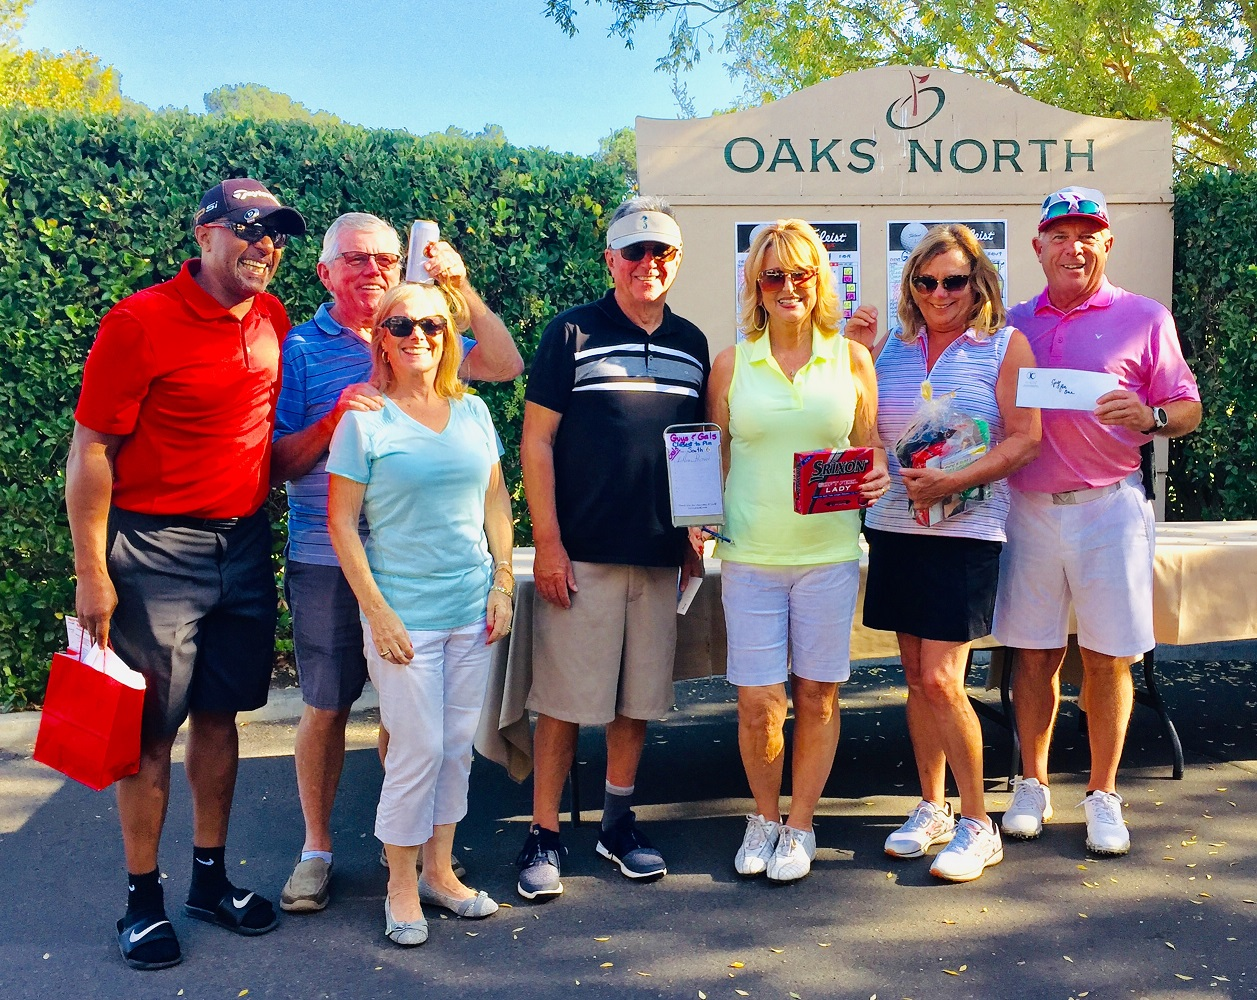 Guys & Gals Tournament at Oaks North